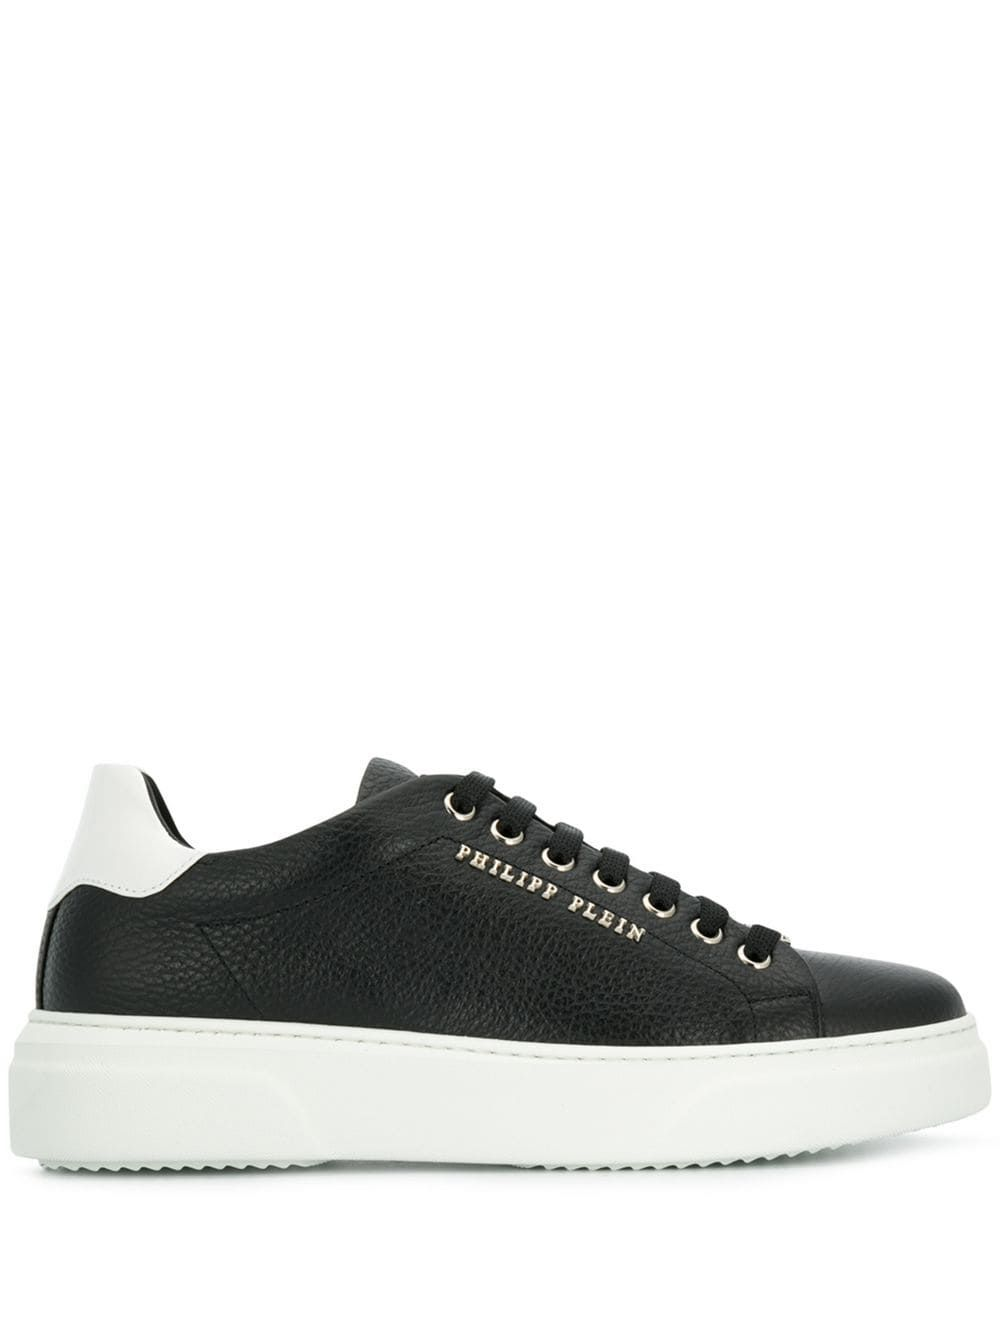 PHILIPP PLEIN PHILIPP PLEIN LO TOP SNEAKERS ORIGINAL BLACK